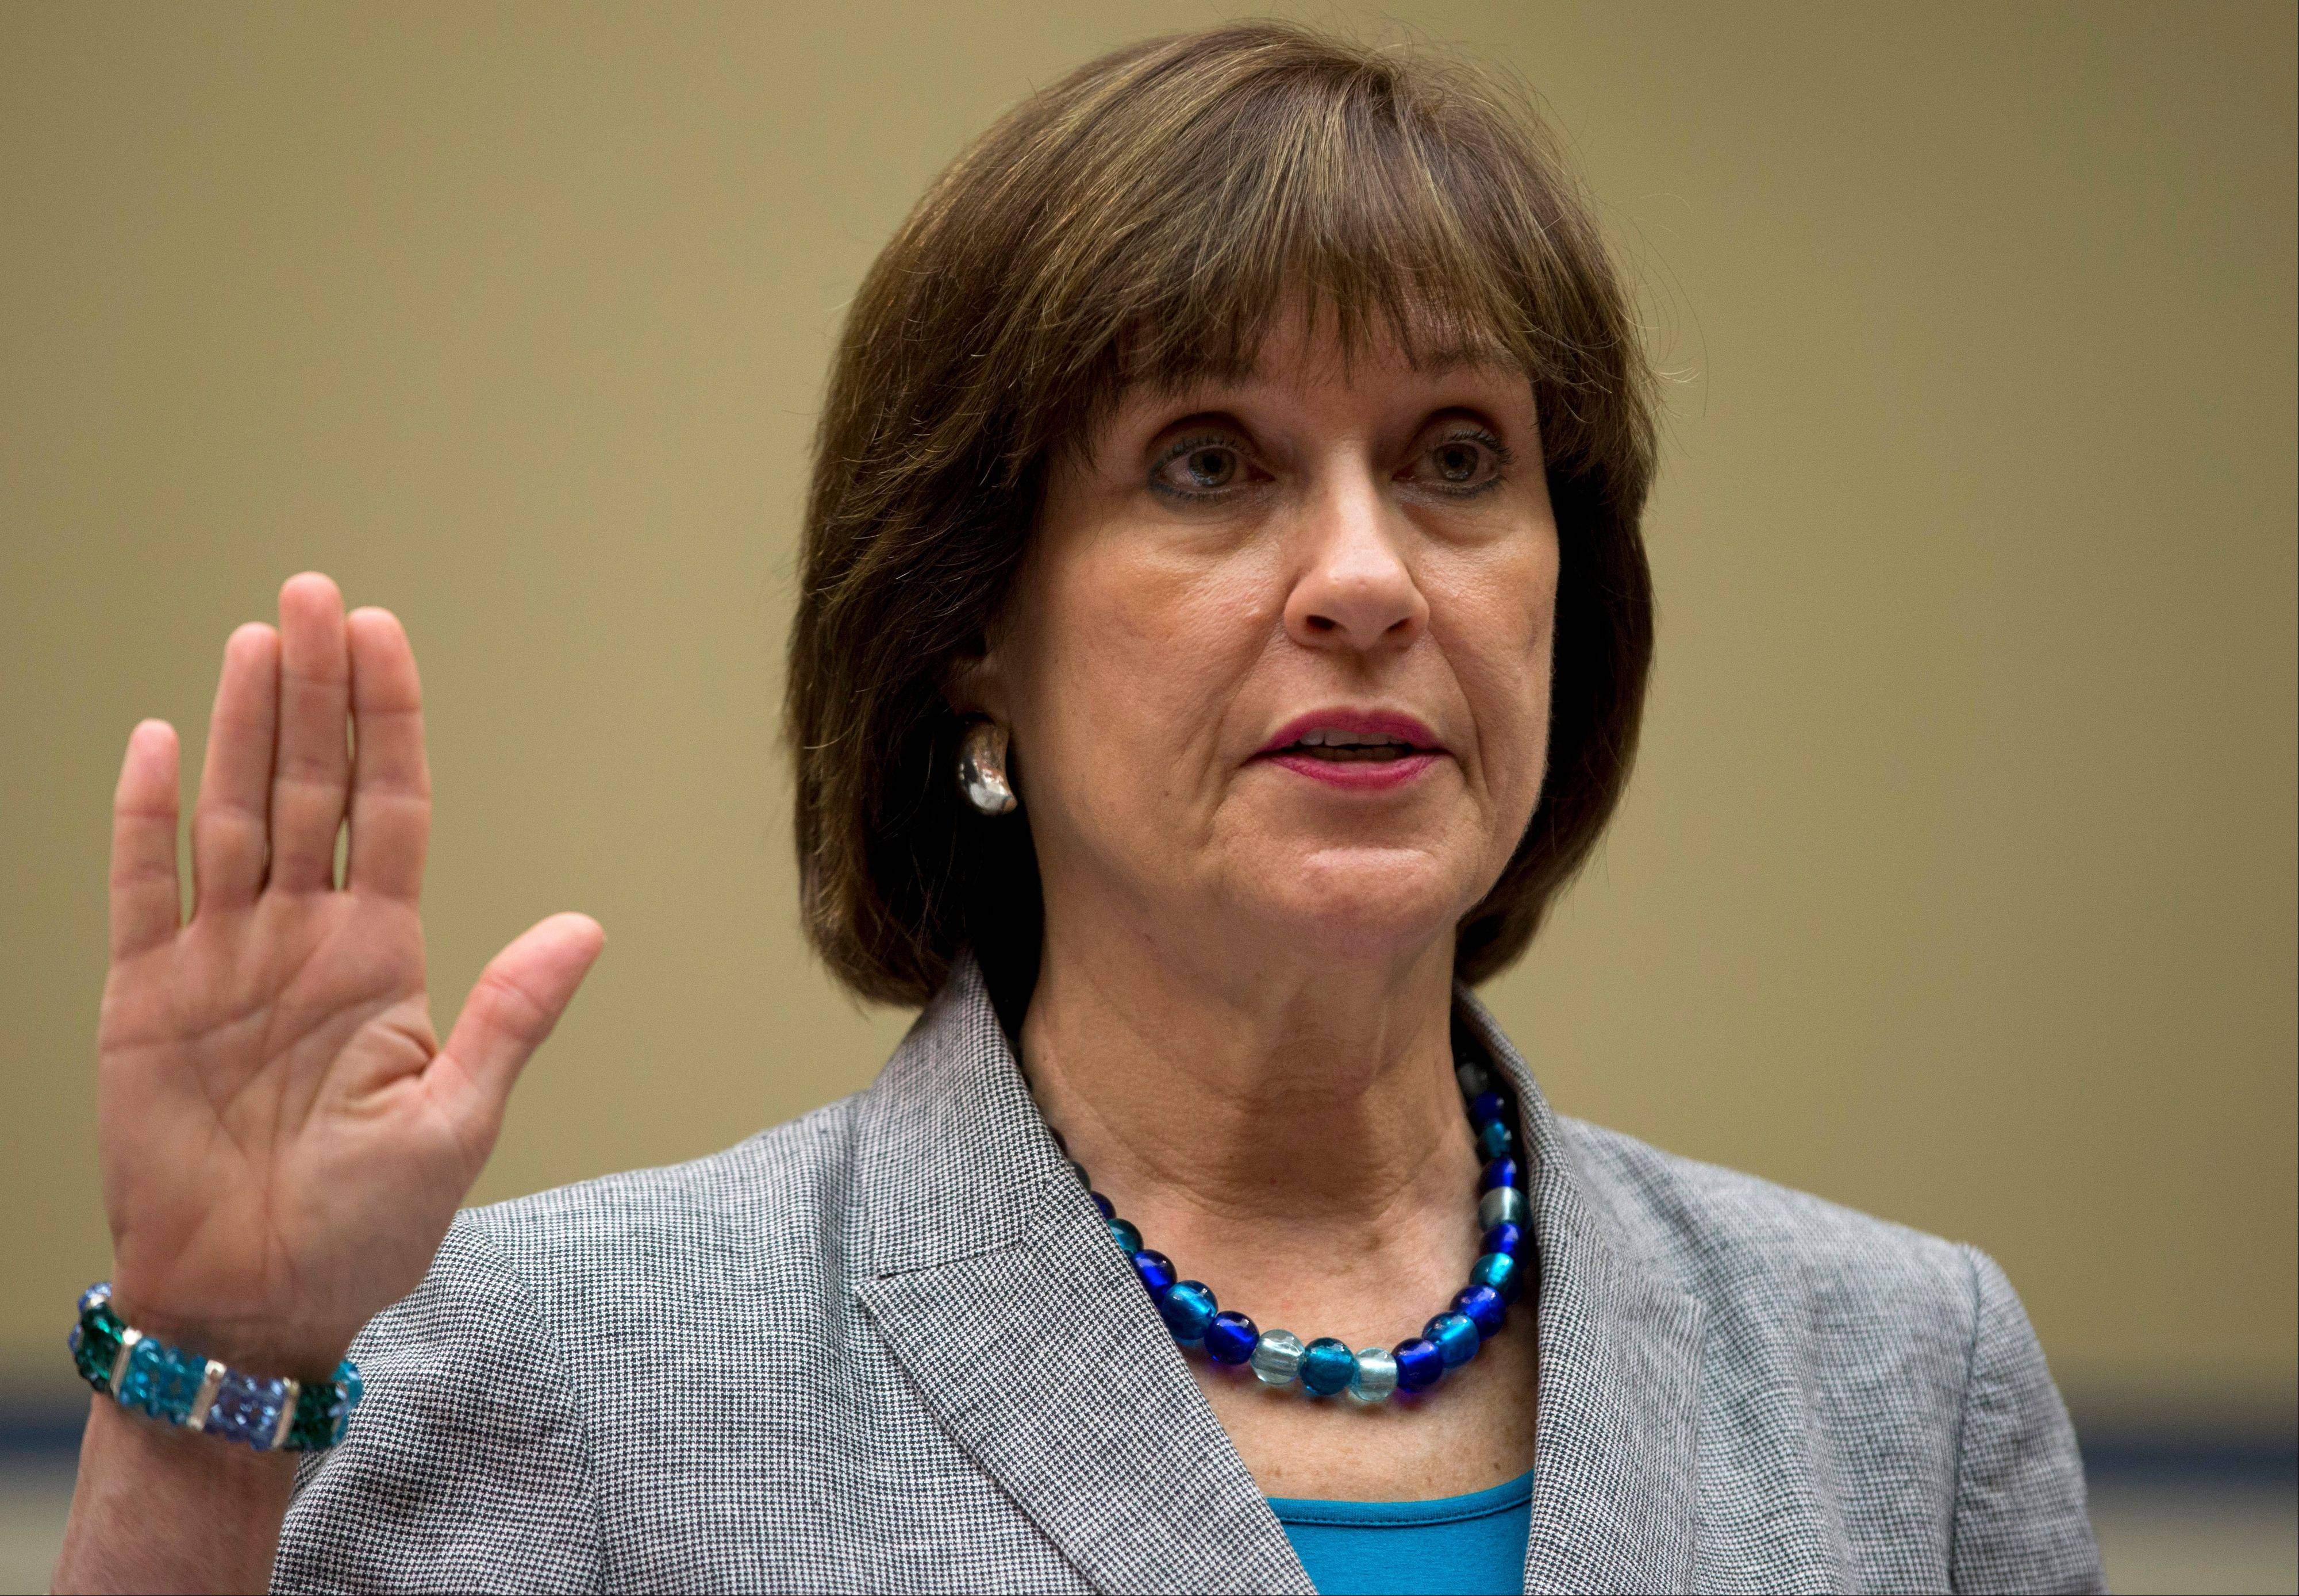 IRS official Lois Lerner is sworn in on Capitol Hill Wednesday before the House Oversight Committee hearing to investigate the extra scrutiny IRS gave to Tea Party and other conservative groups that applied for tax-exempt status. Lerner told the committee she did nothing wrong and then invoked her constitutional right to not answer lawmakers' questions.